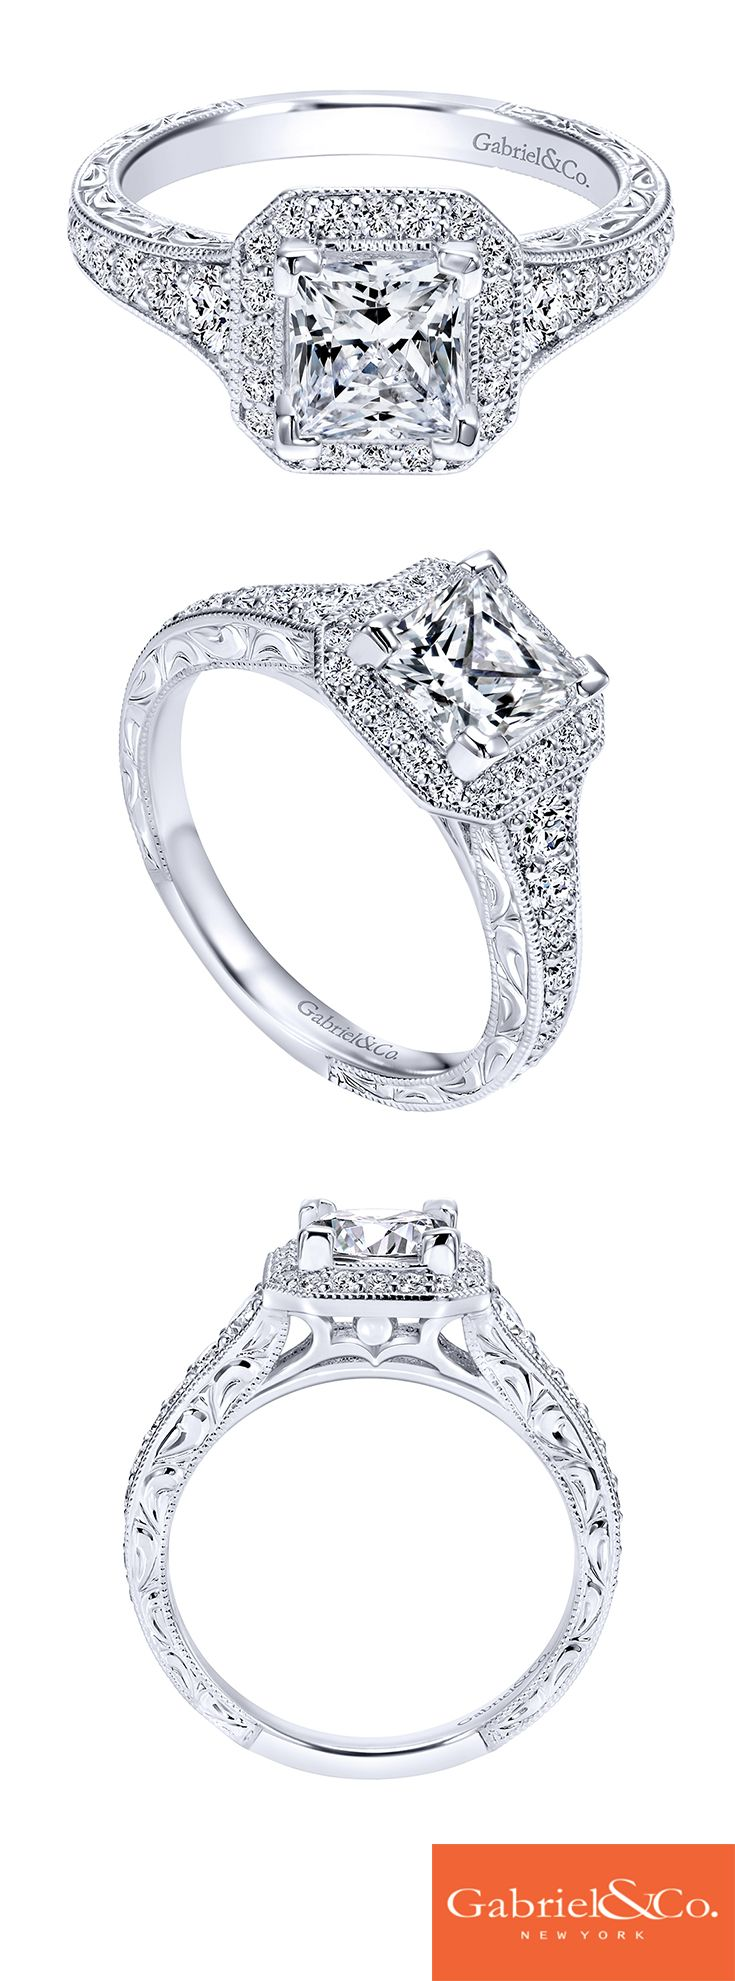 Estelle Platinum Princess Cut Halo Engagement Ring  Er11793s4pt4jj